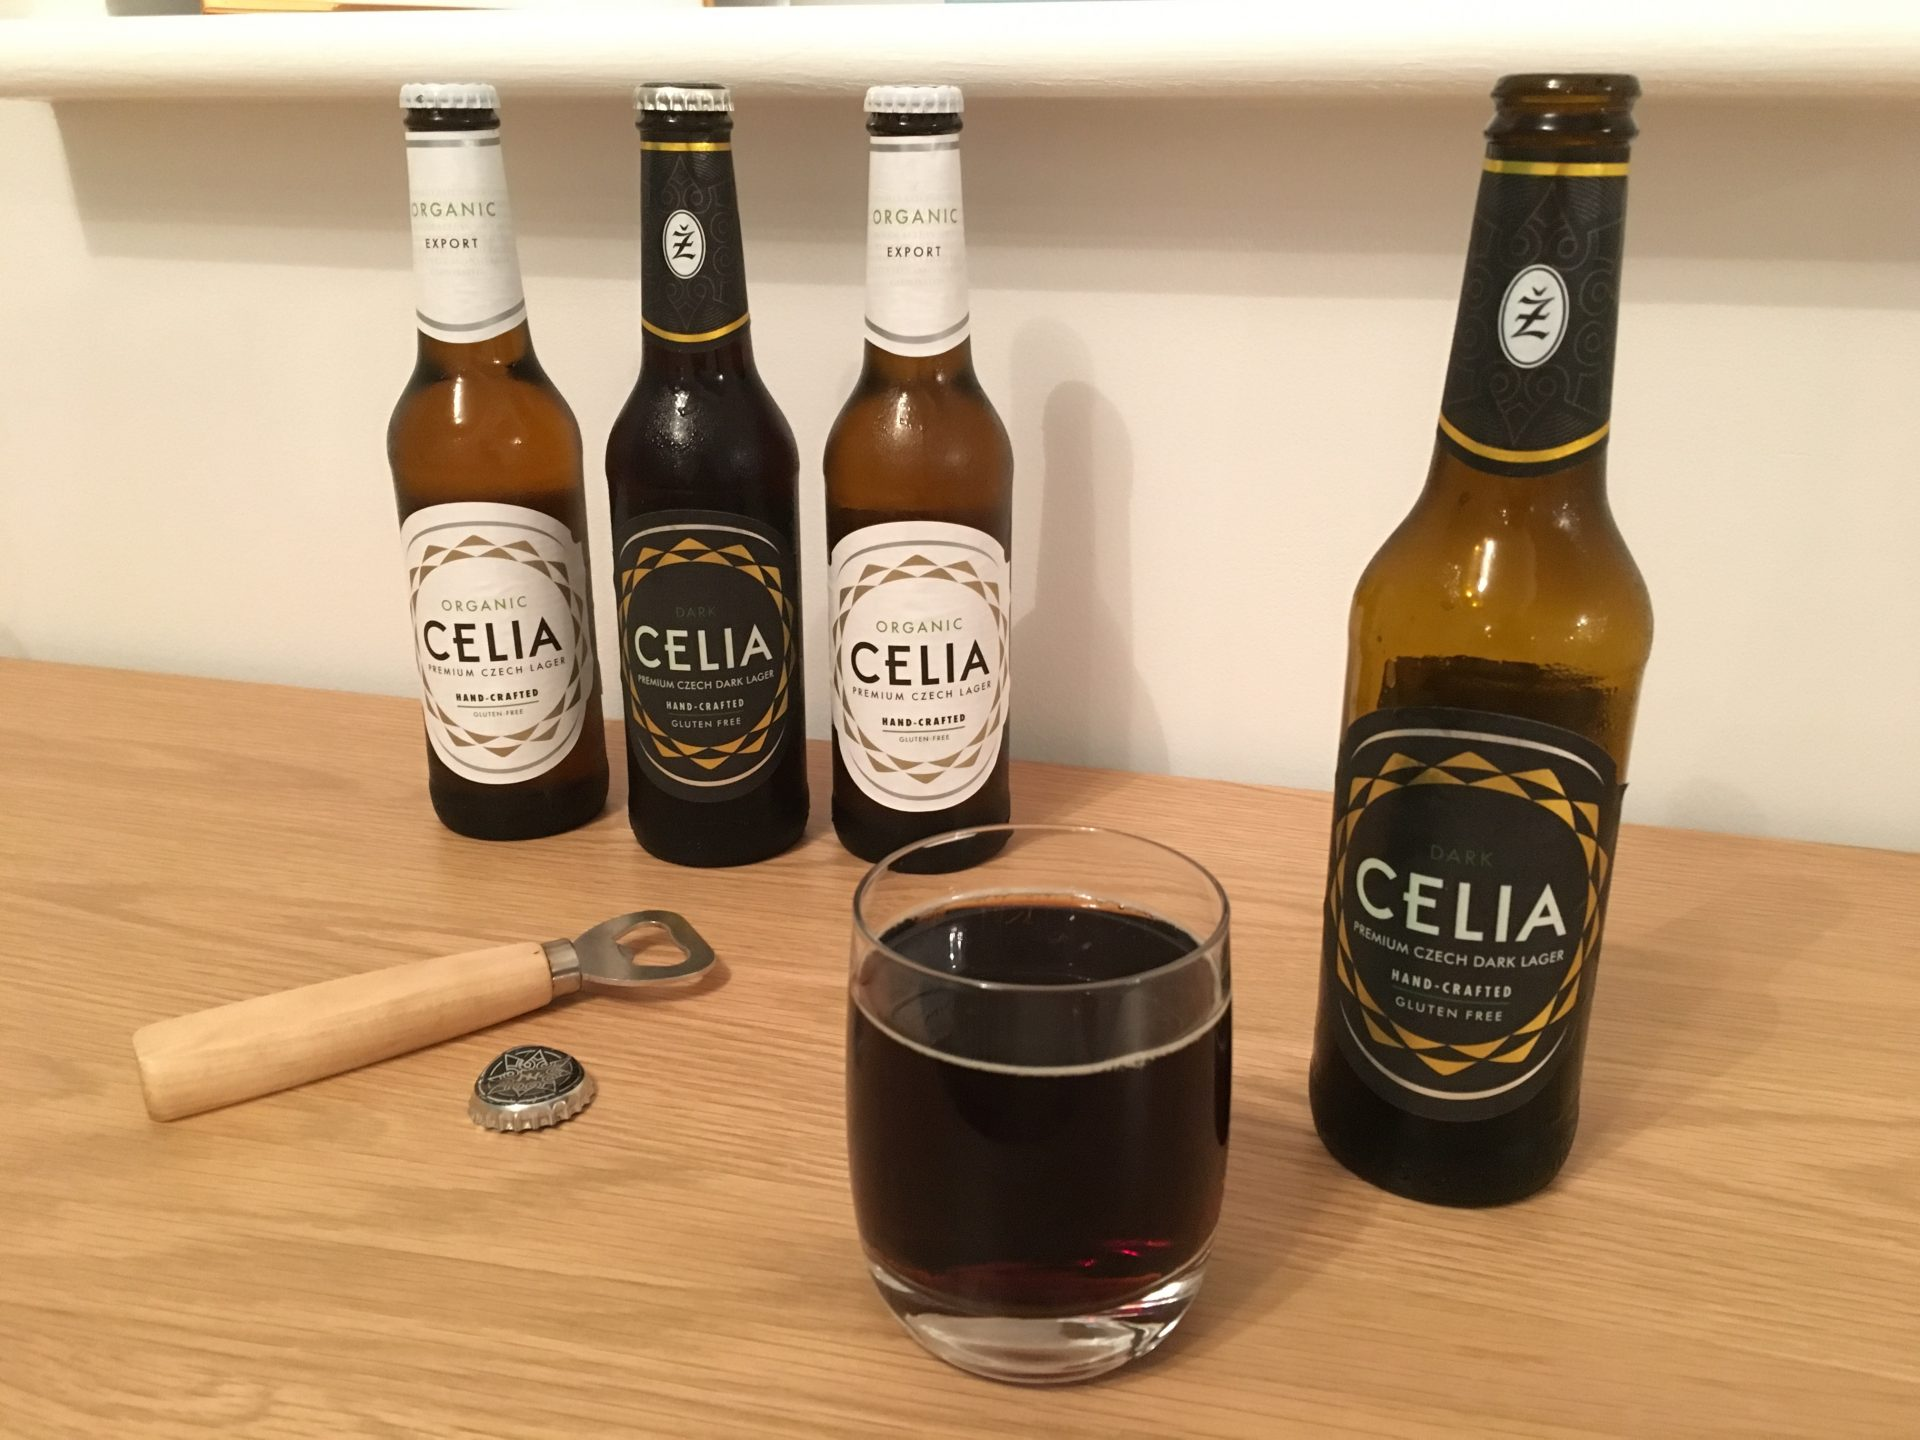 CELIA Dark Craft Czech Lager